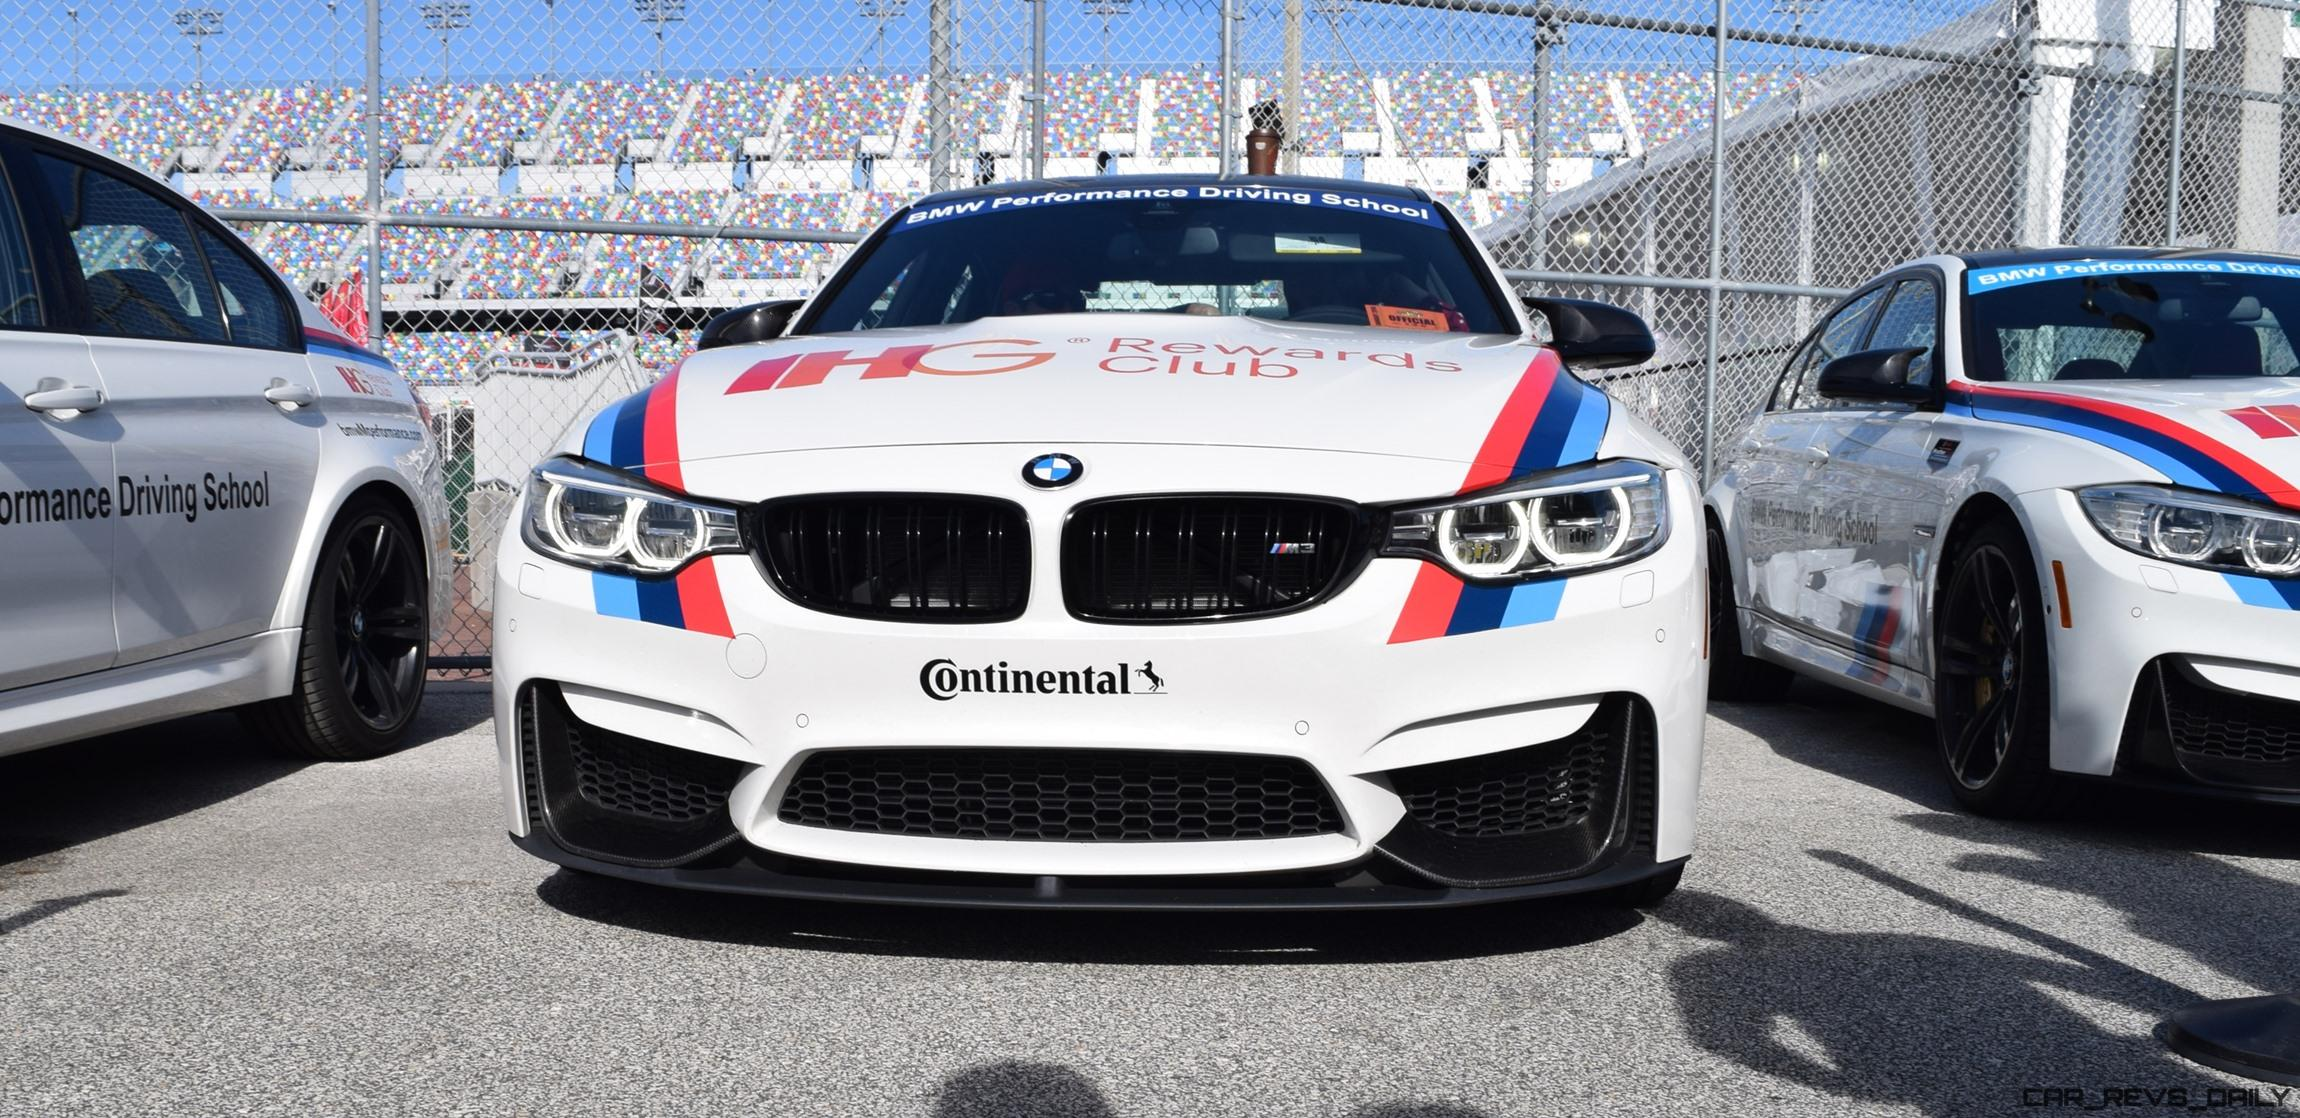 livery photos from daytona speedway bmw performance driving school. Black Bedroom Furniture Sets. Home Design Ideas